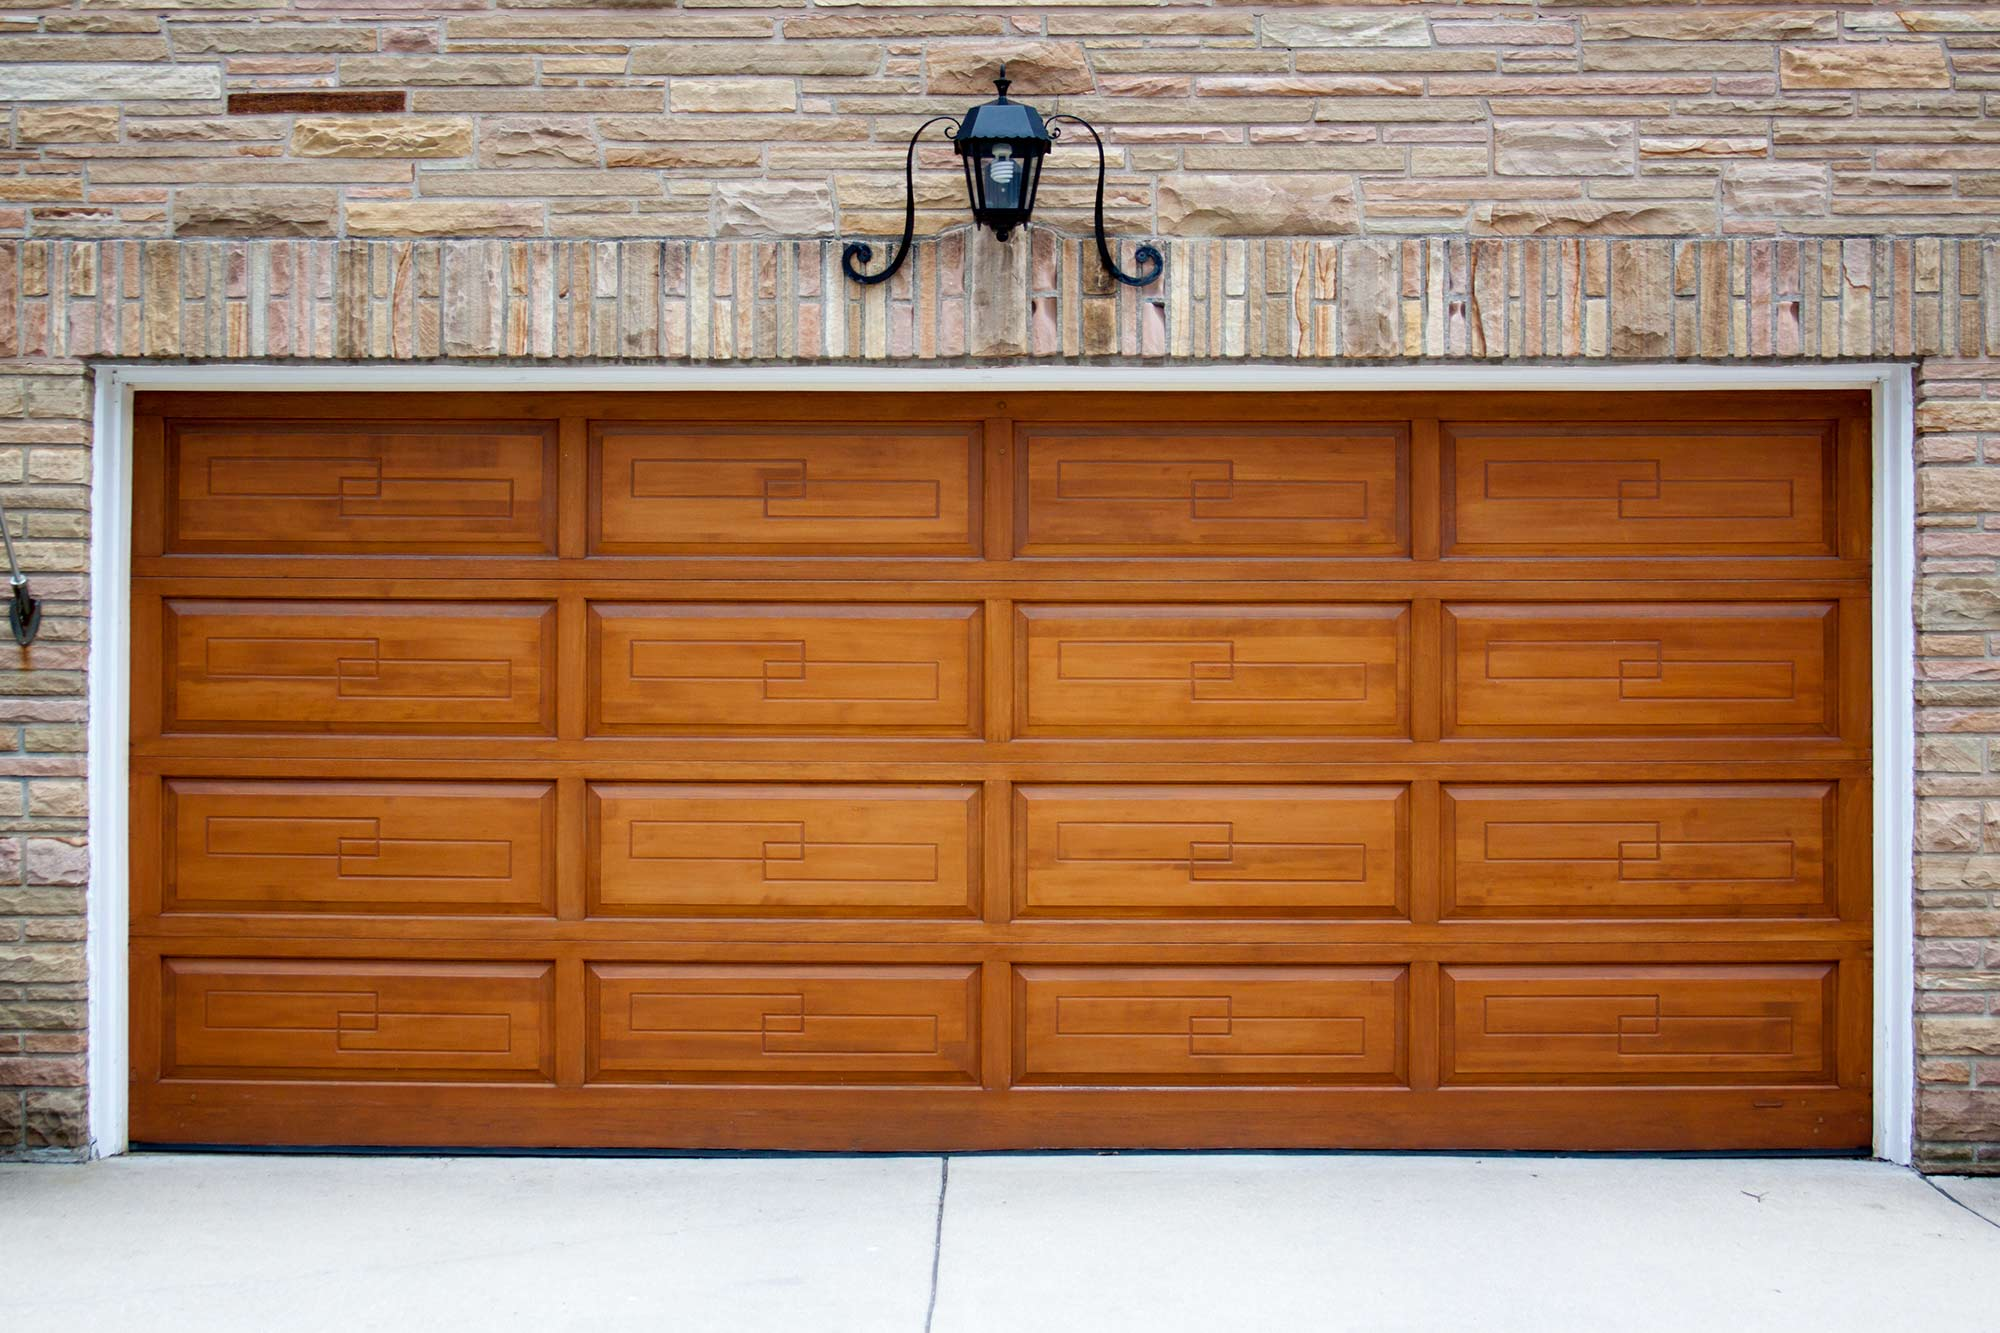 childers-Garage-Door-2